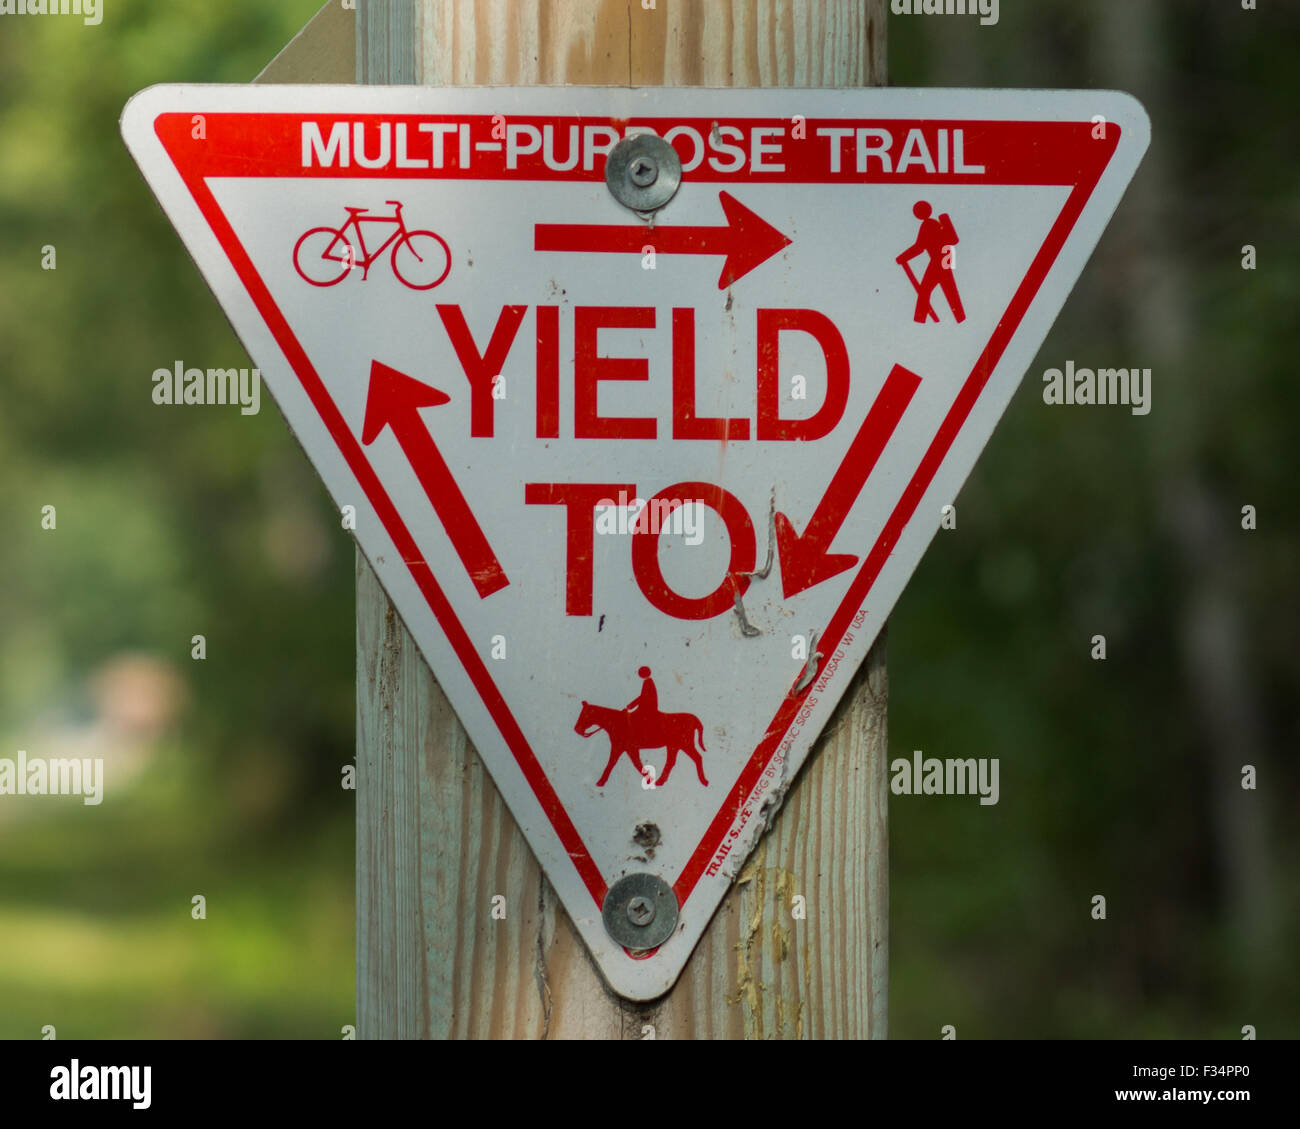 Yield sign at a recreation trail for hiking, biking, horseback riding, and in the winter snowmobiling. - Stock Image